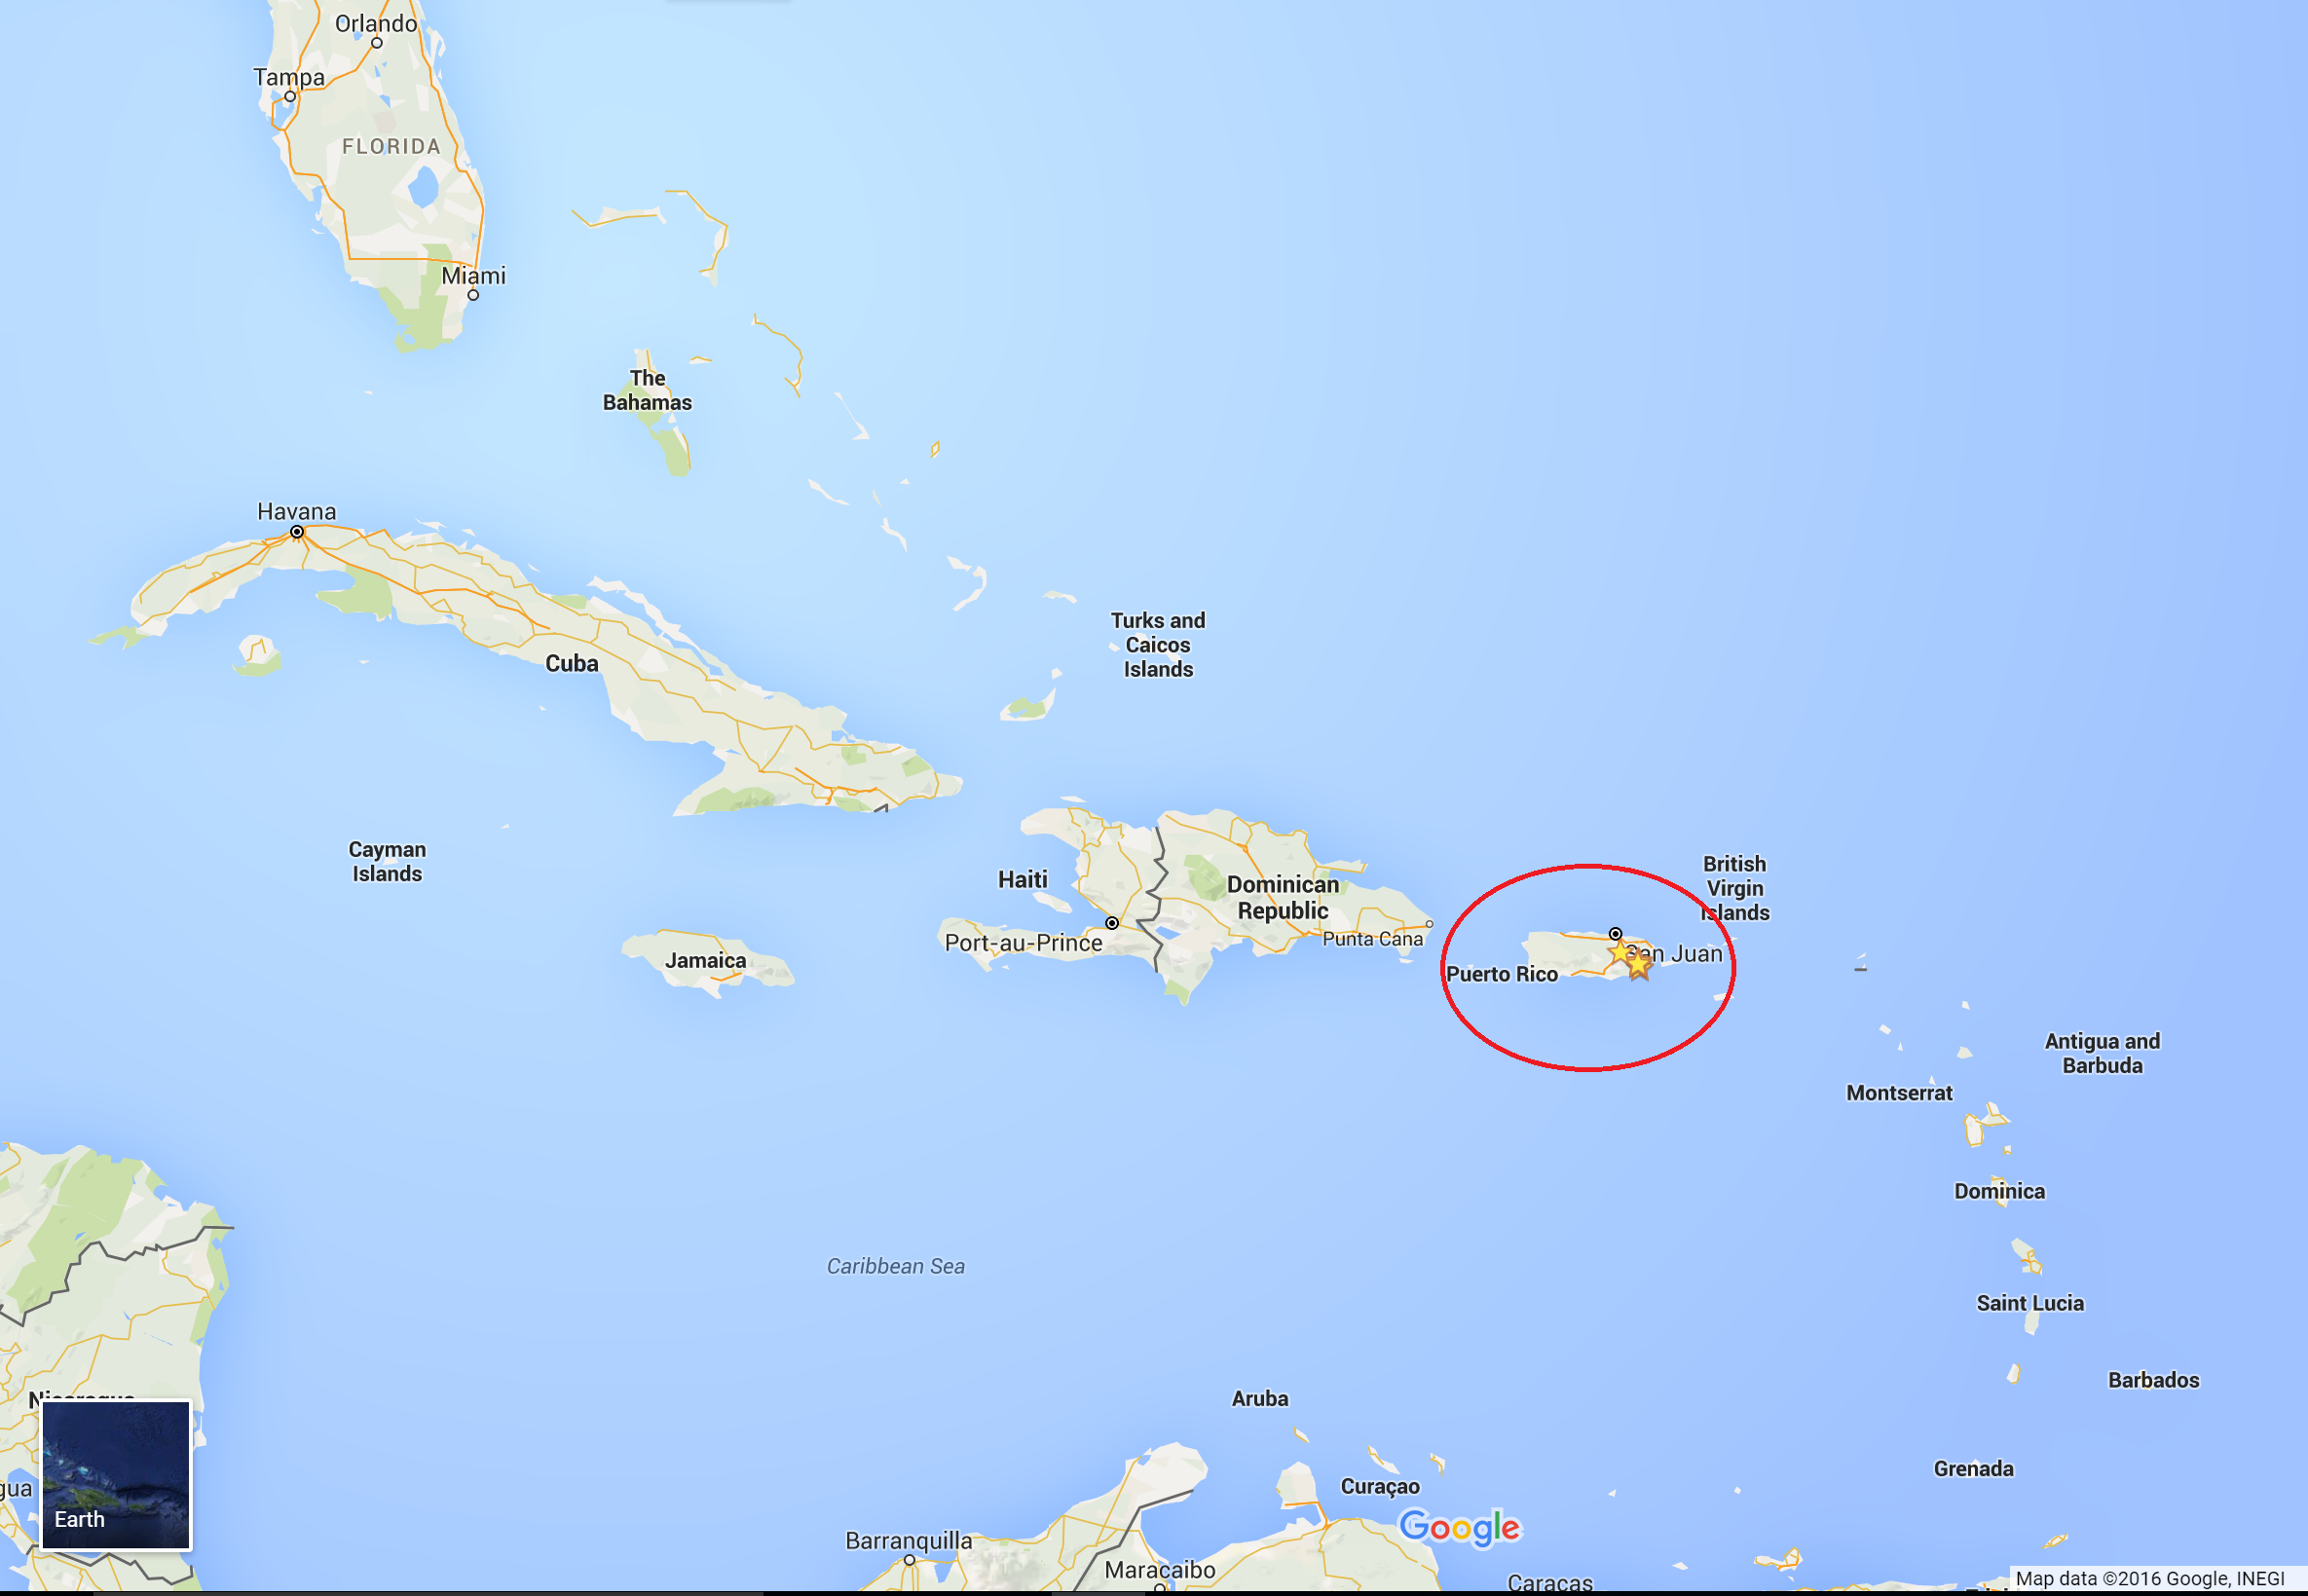 Google Map Caribbean PR Jen There Done That - Map of dominica caribbean sea